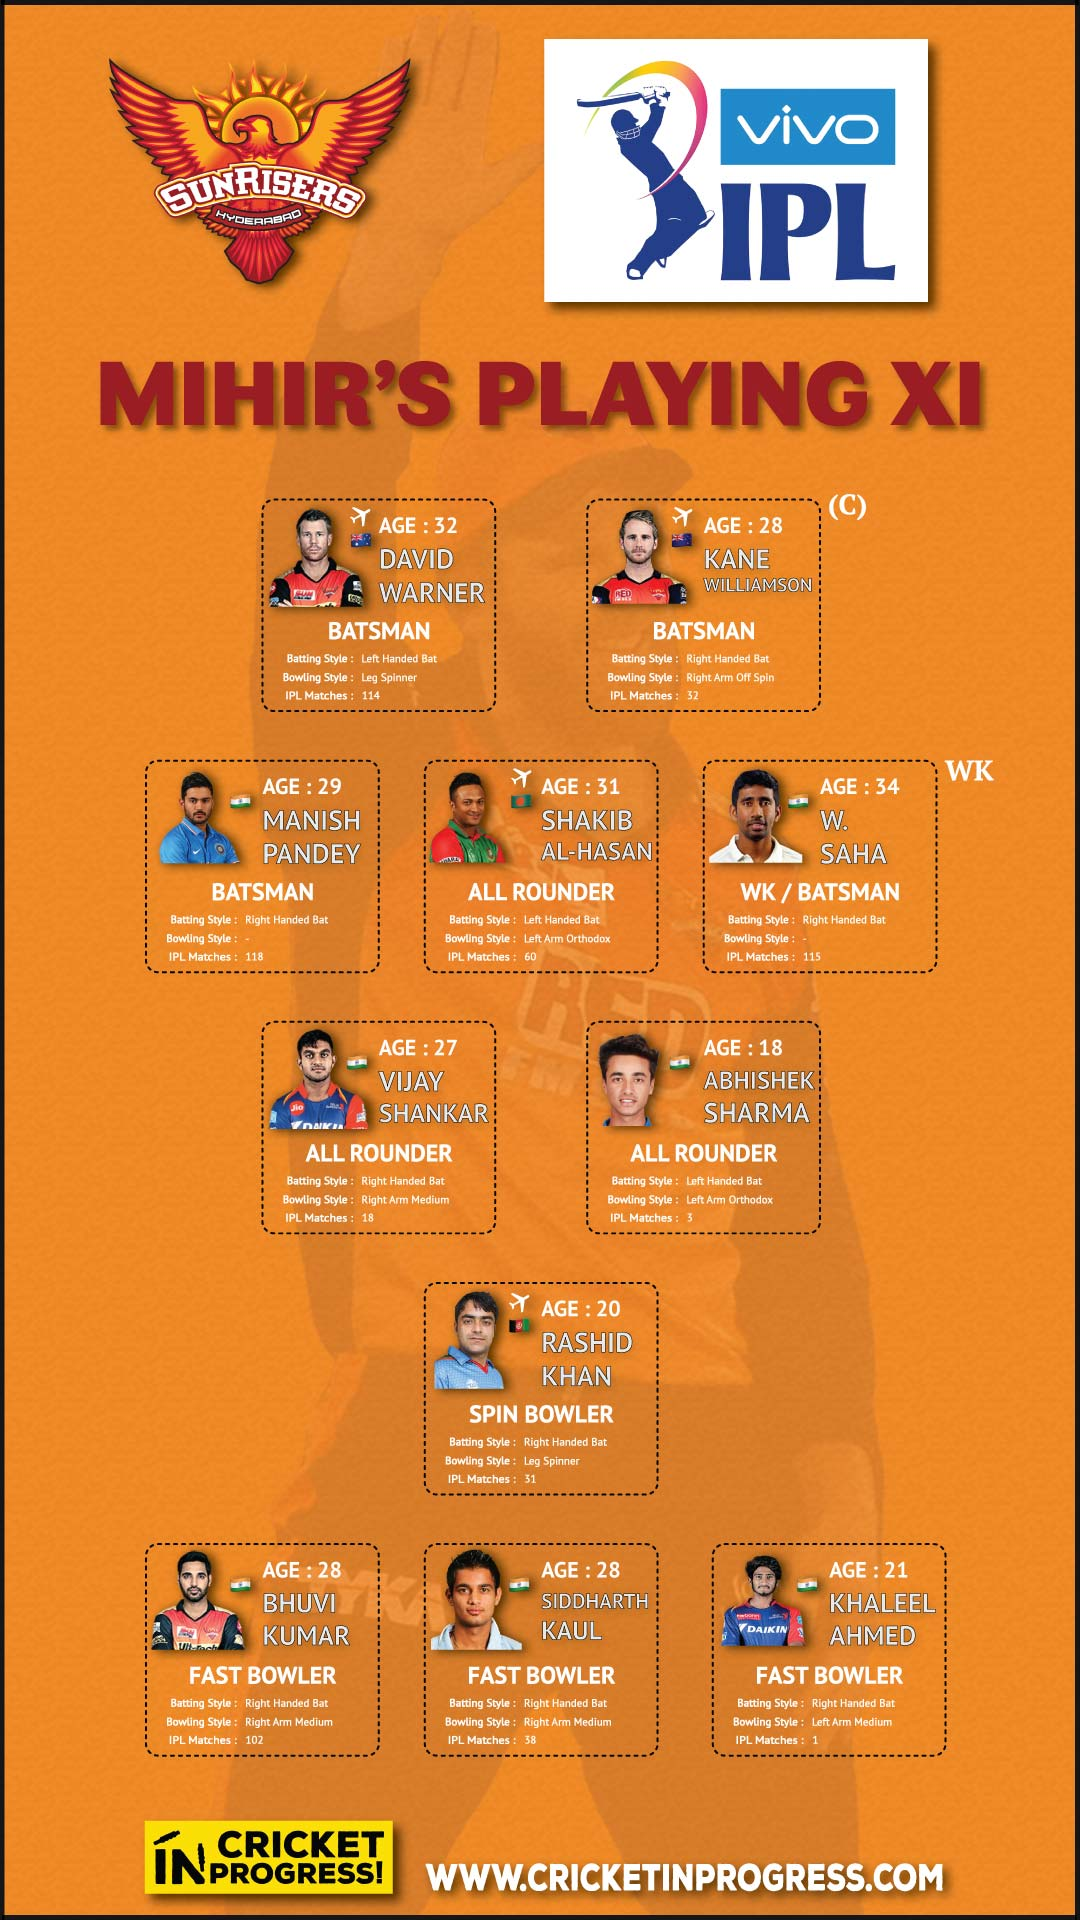 IPL 2019 SRH Mihir Playing XI